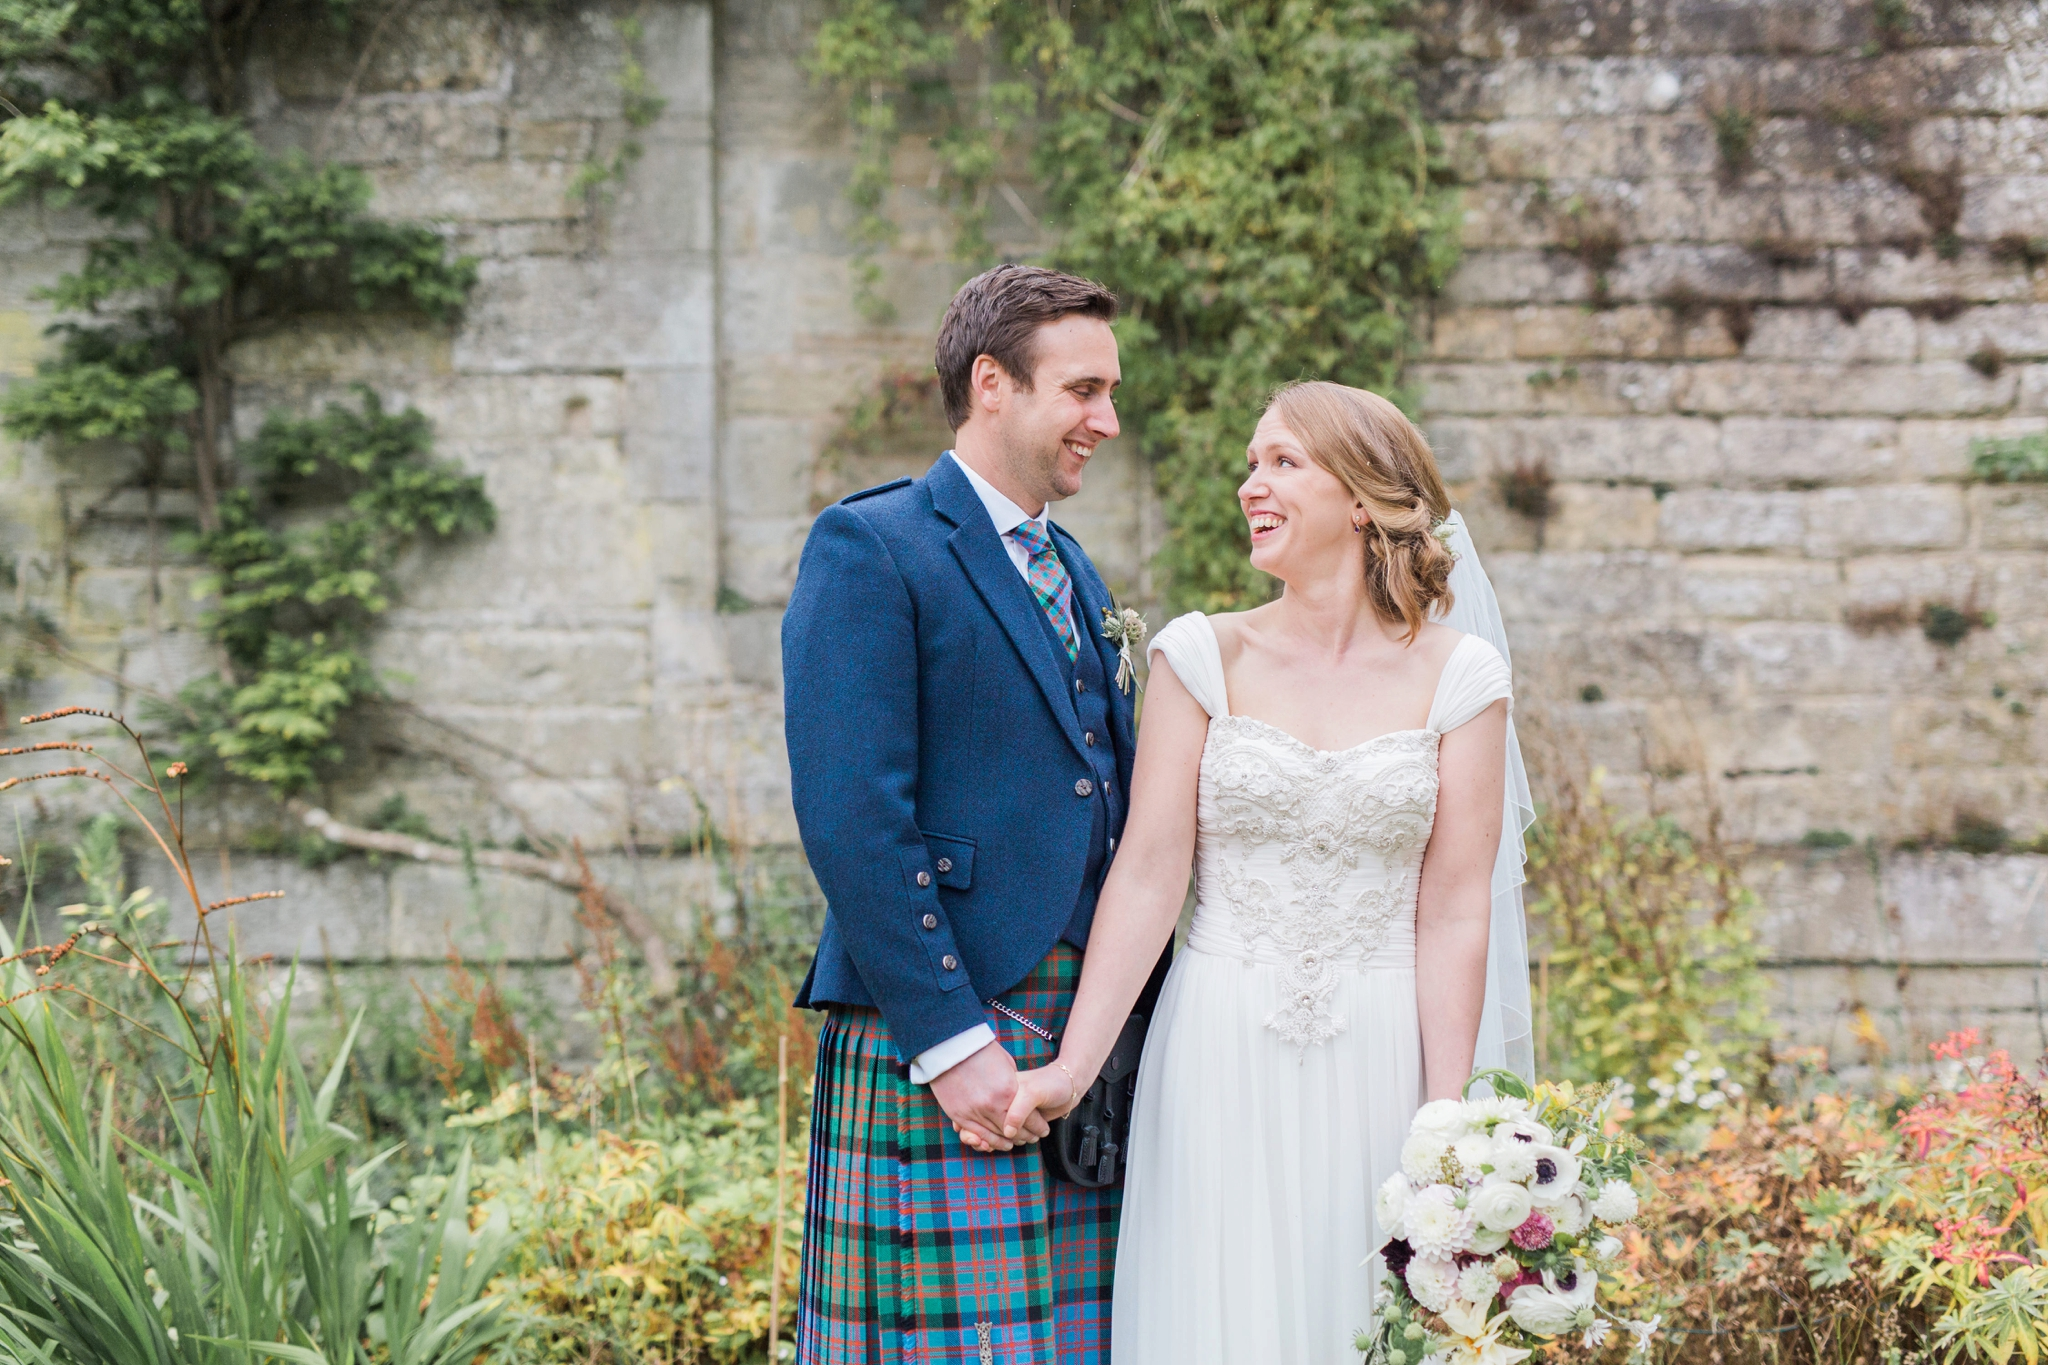 Suzanne_li_photography_kirknewton_wedding_0037.jpg